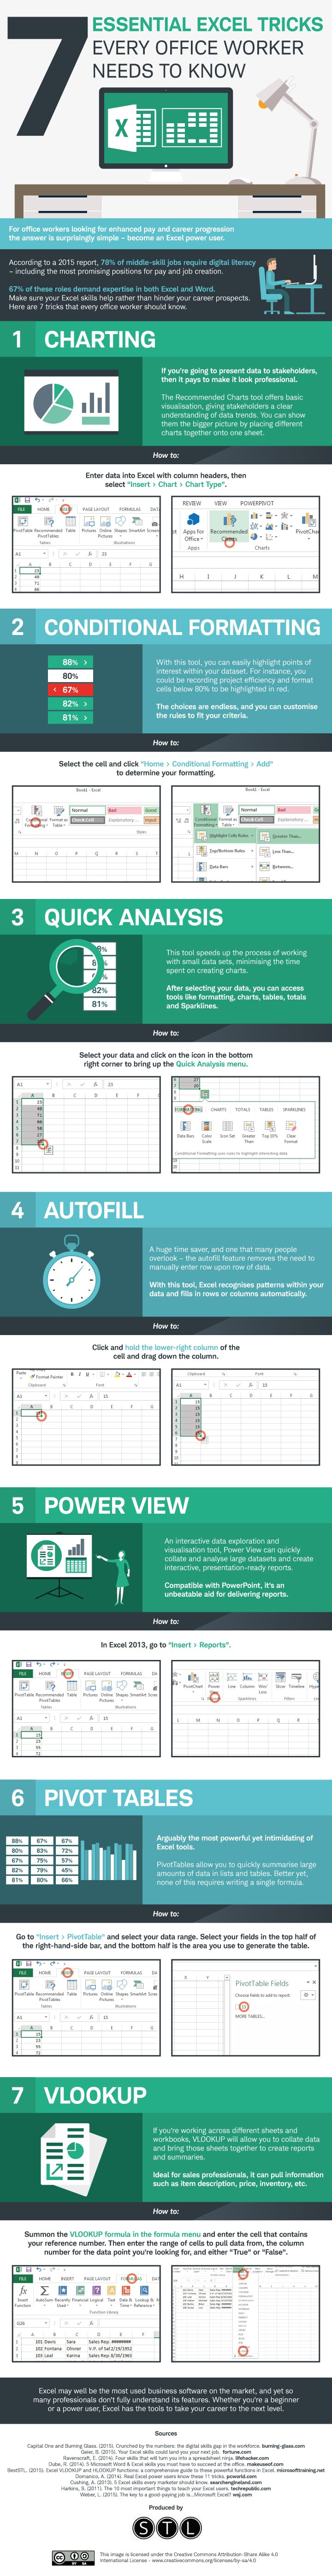 infographic - 7 essential Excel tricks every office worker needs to know